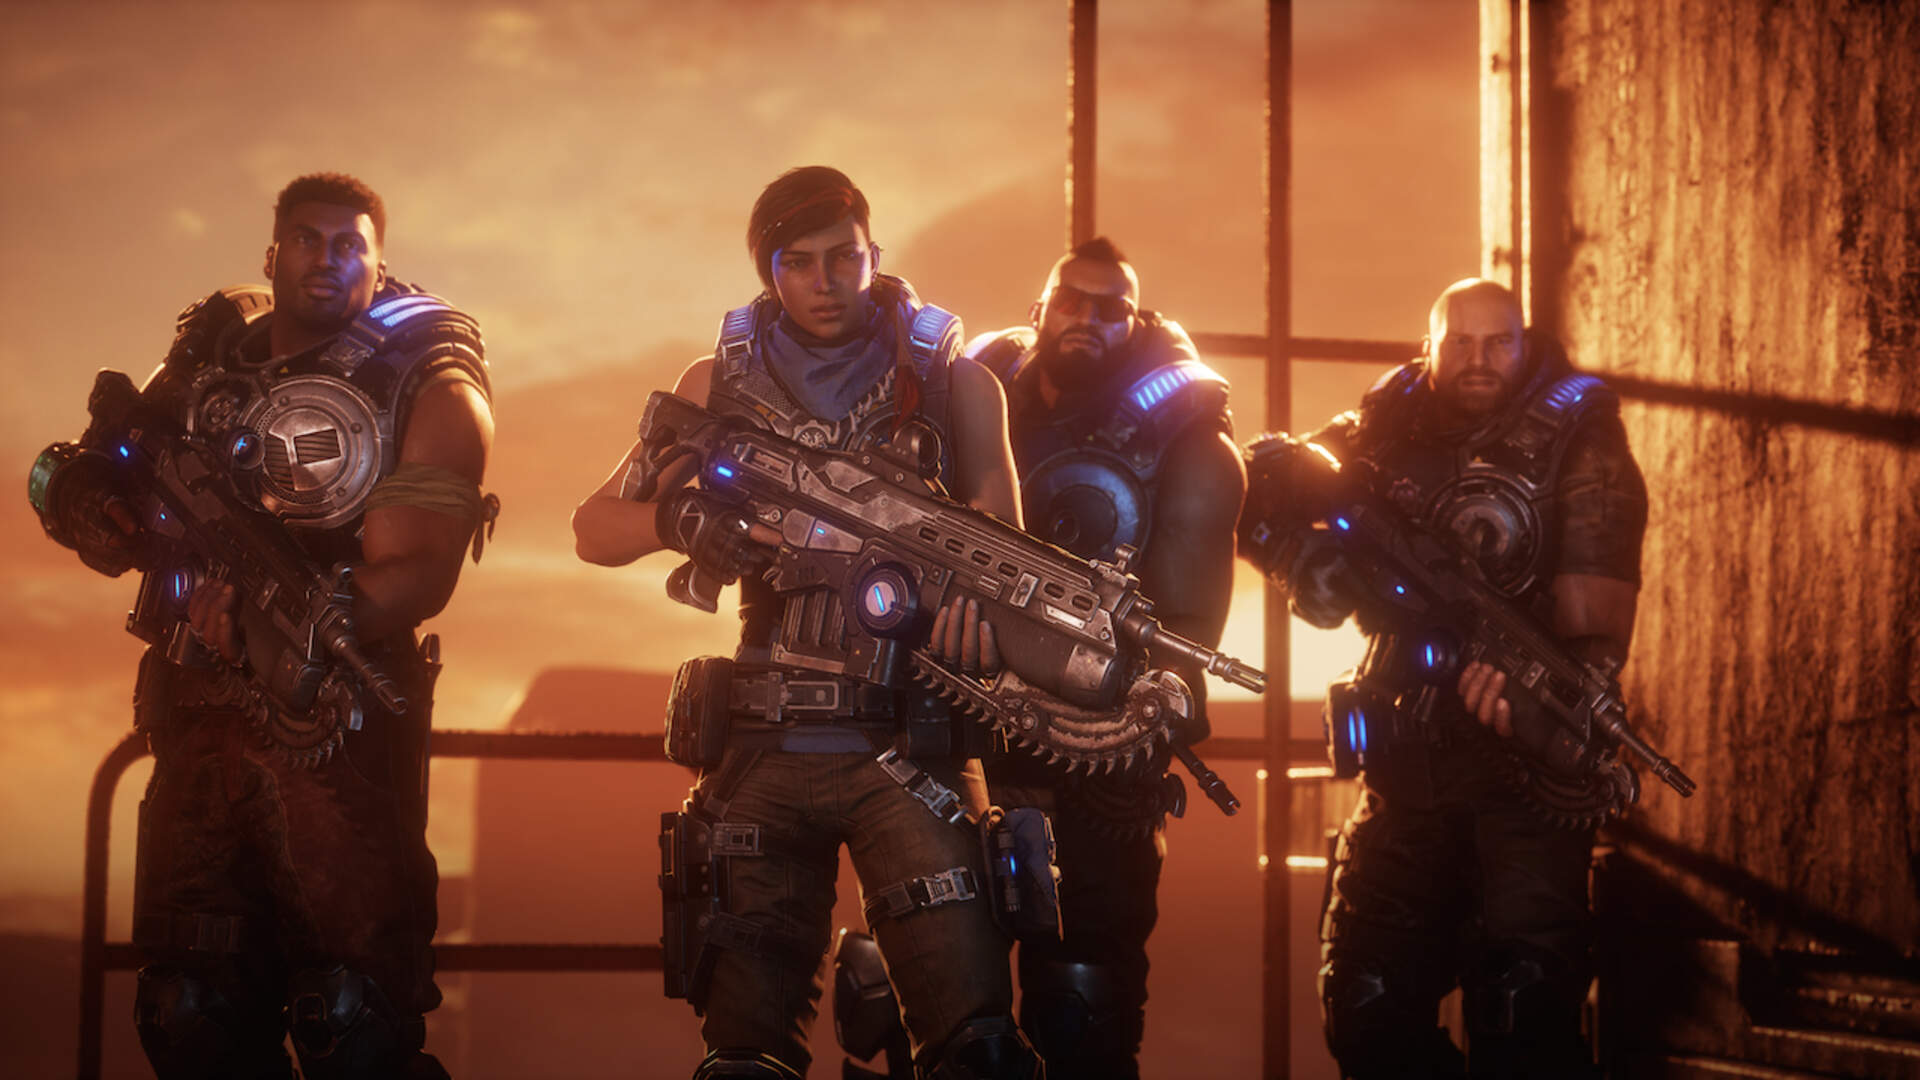 Gears 5 Horde Mode Tips - Character Abilities, Classes, How to Upgrade Fortifications